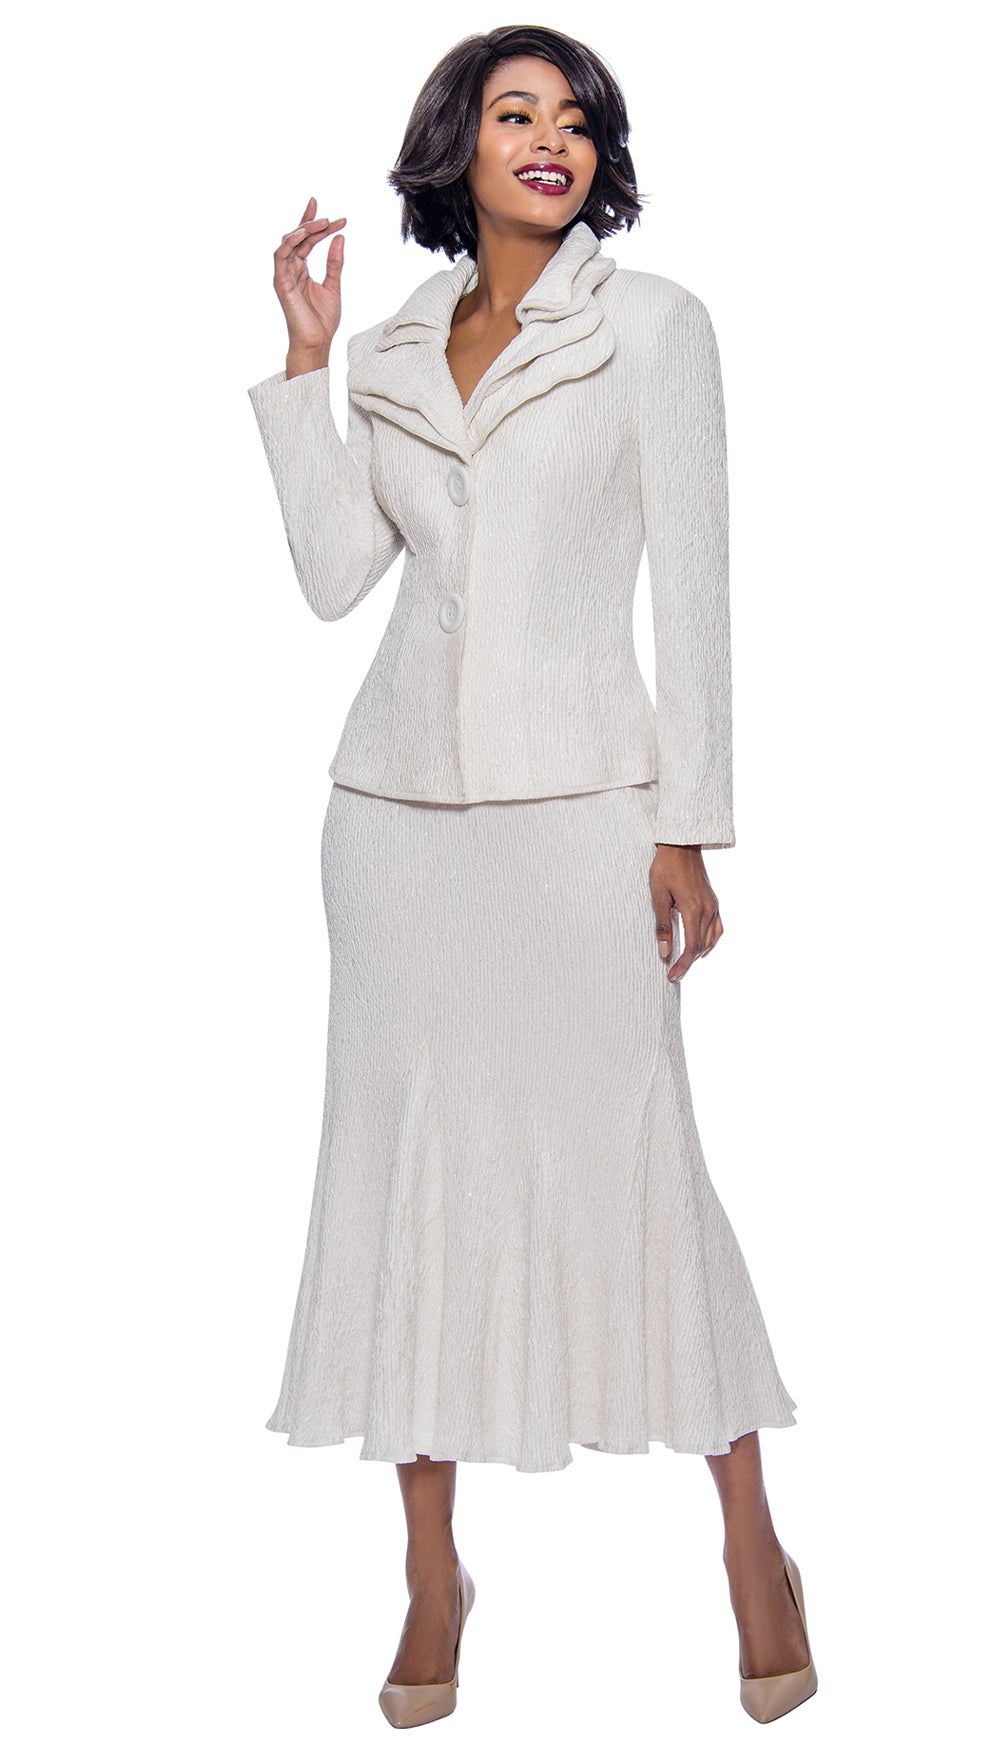 Terramina Suit 7656-White - Church Suits For Less